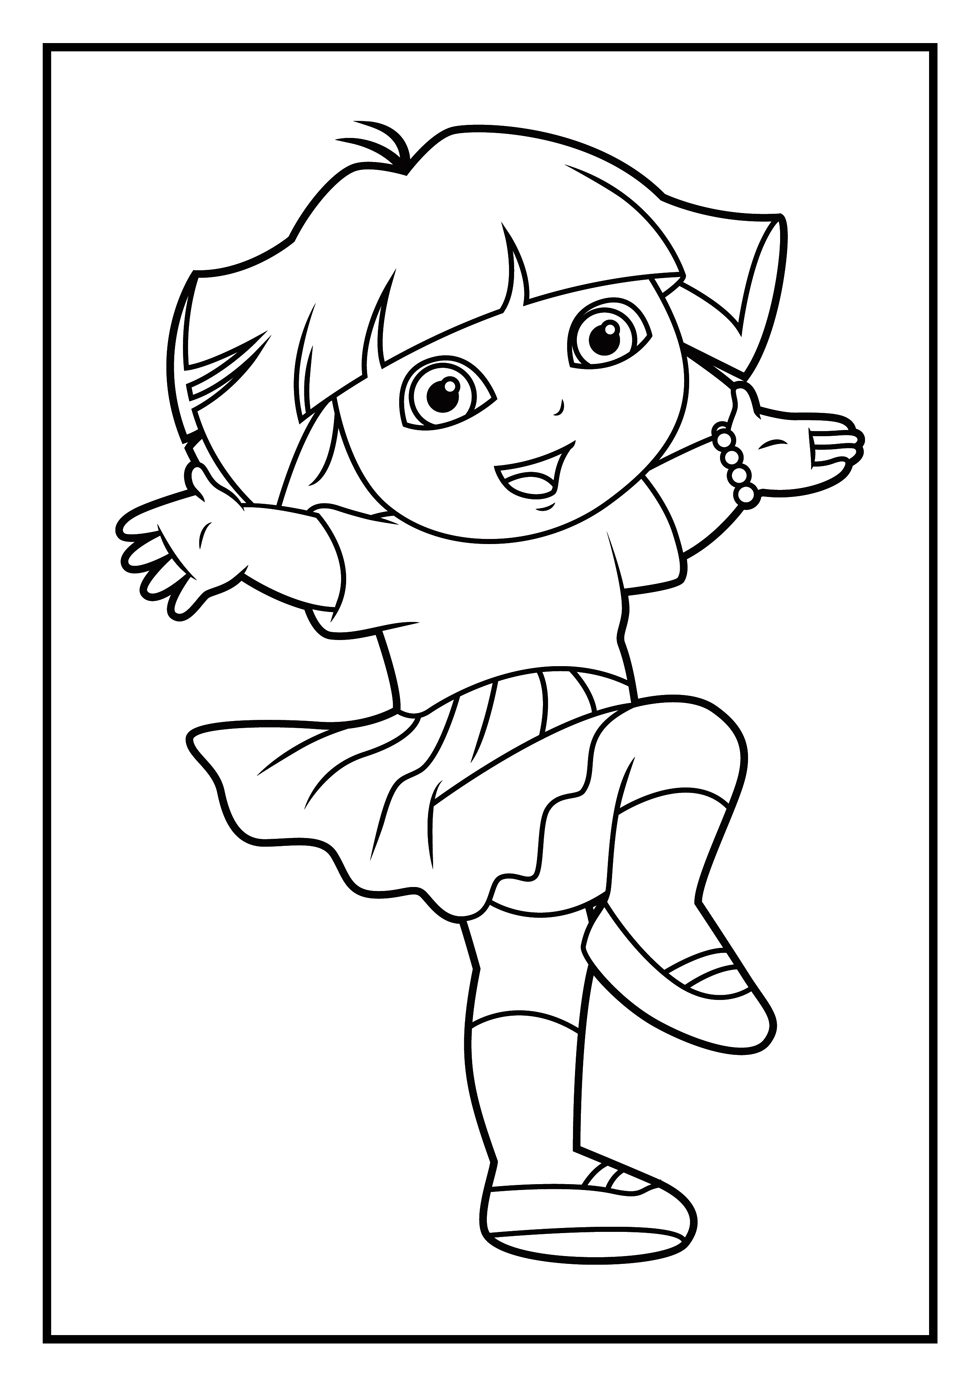 dora colouring pages dora colouring pictures coloring pages to print colouring dora pages